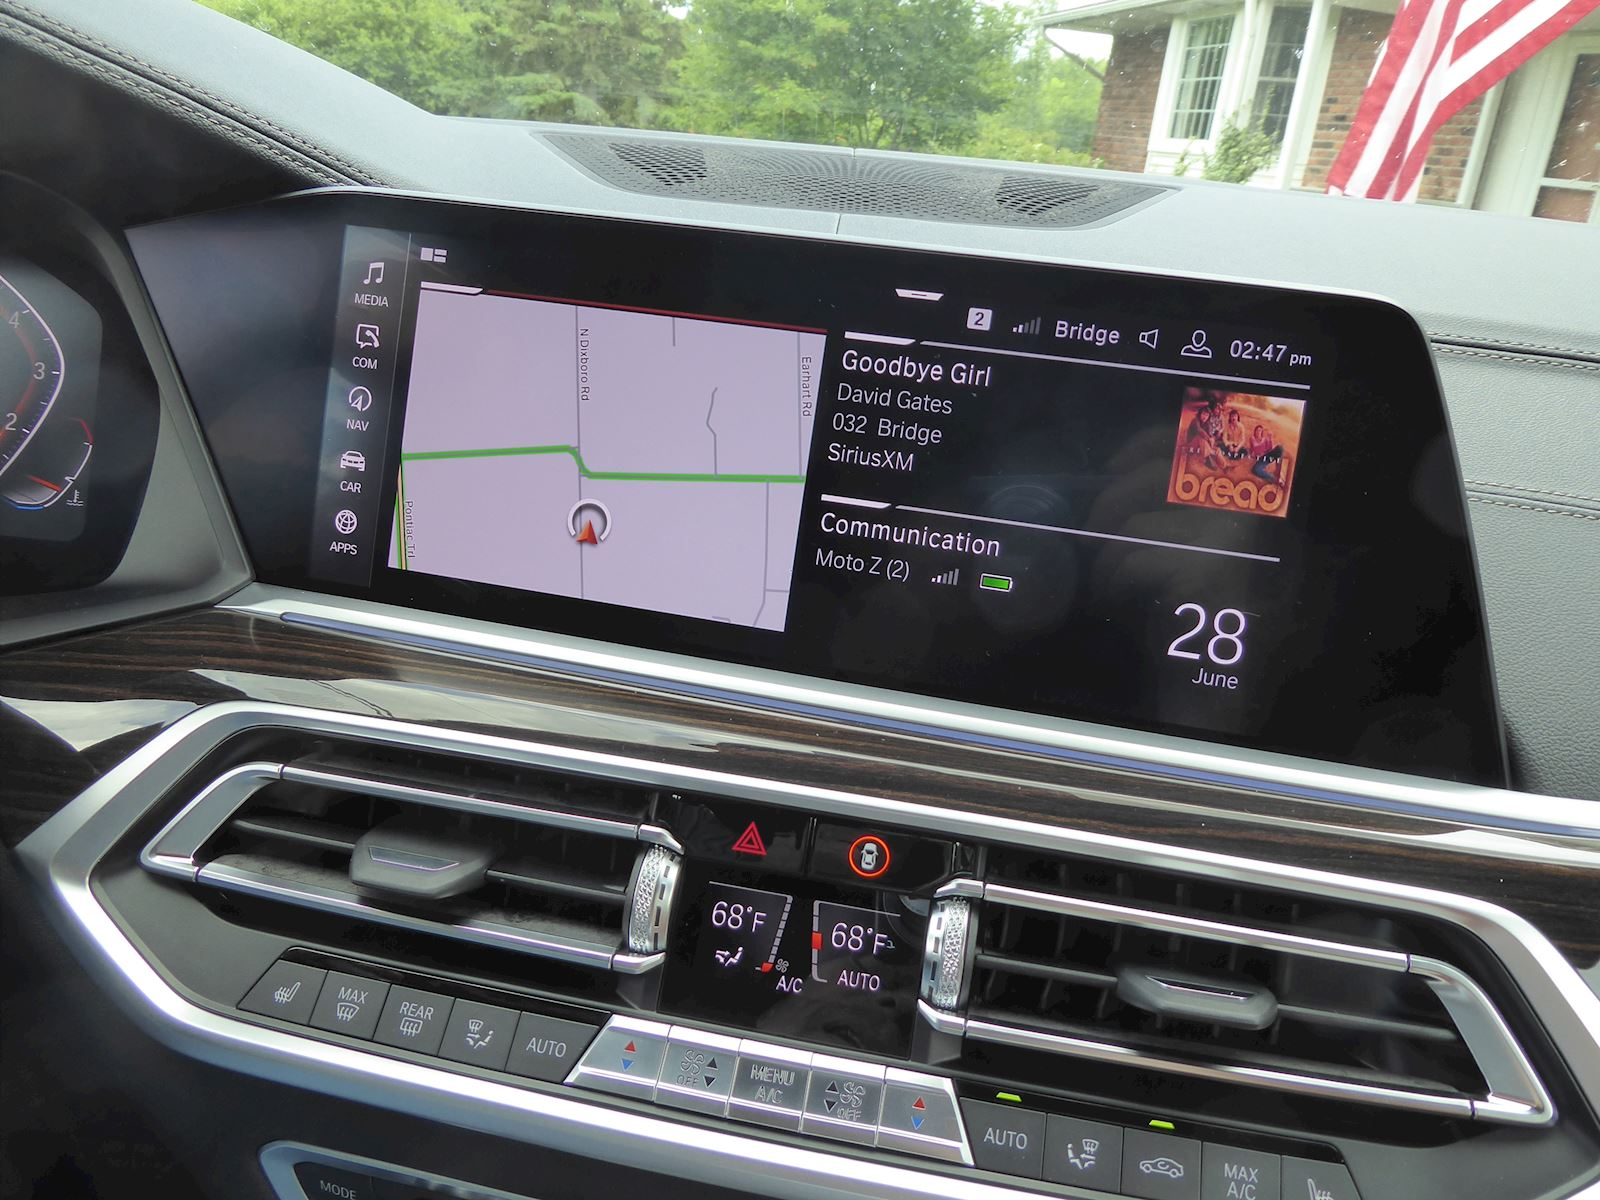 BMW X7 infotainment photo